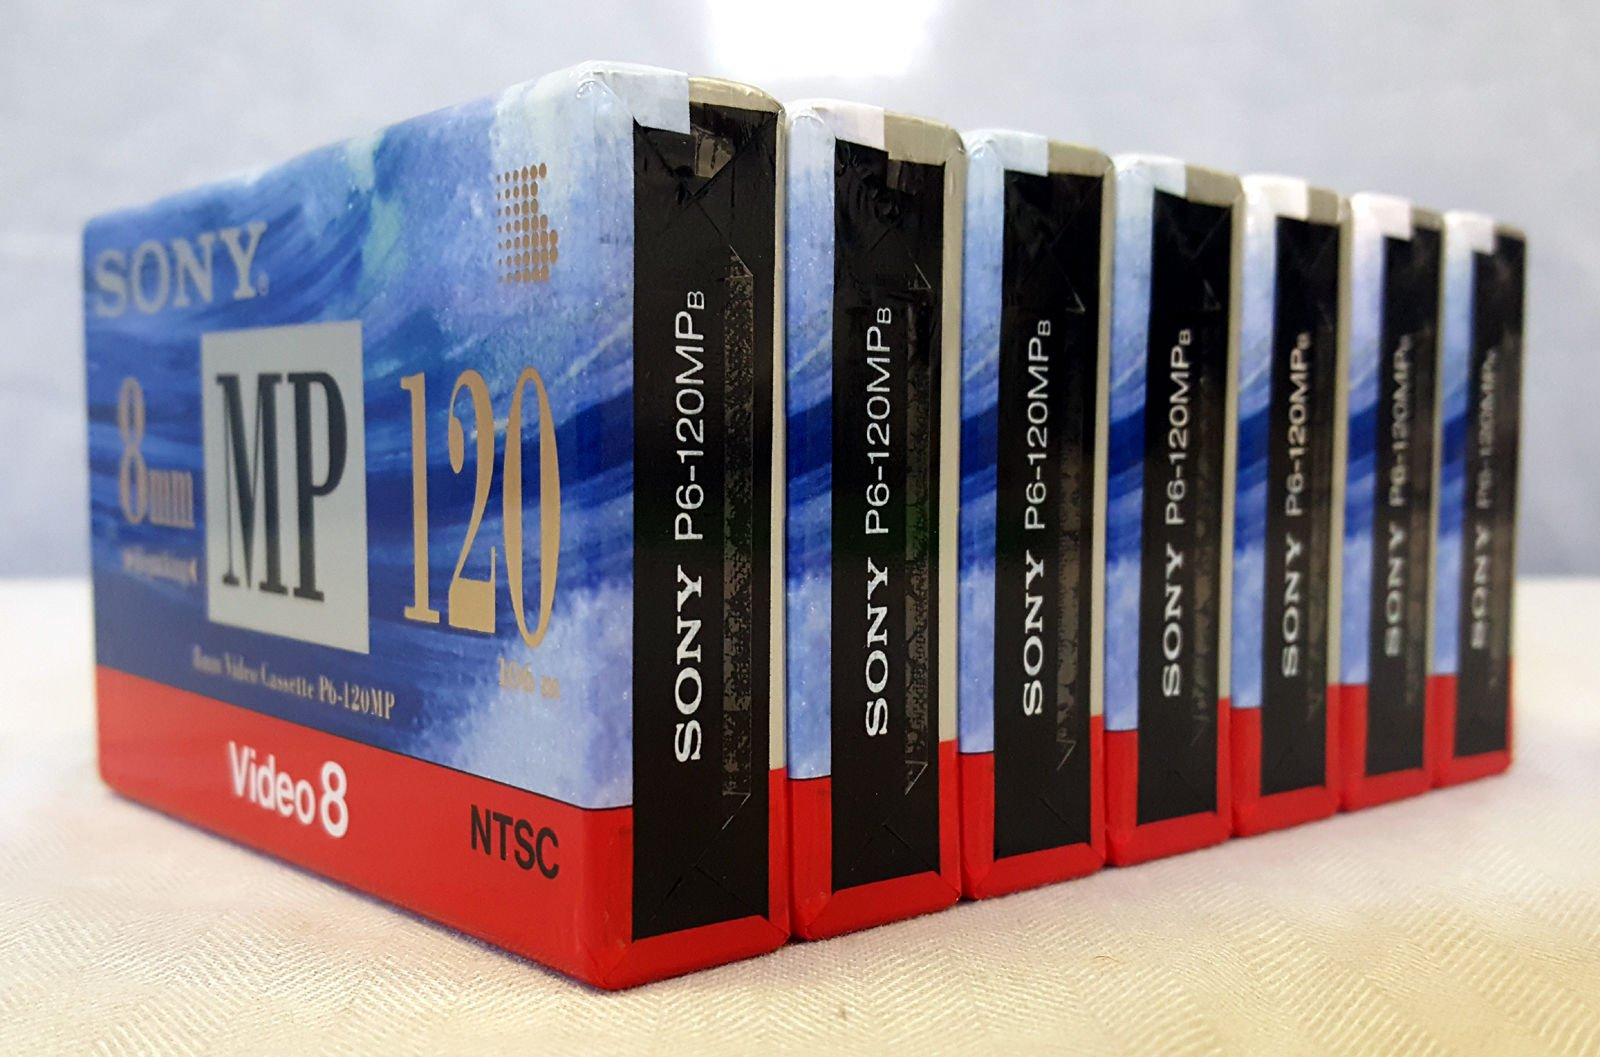 Sony 8MM Video Cassette P6-120MP - Pack of 7 by Son